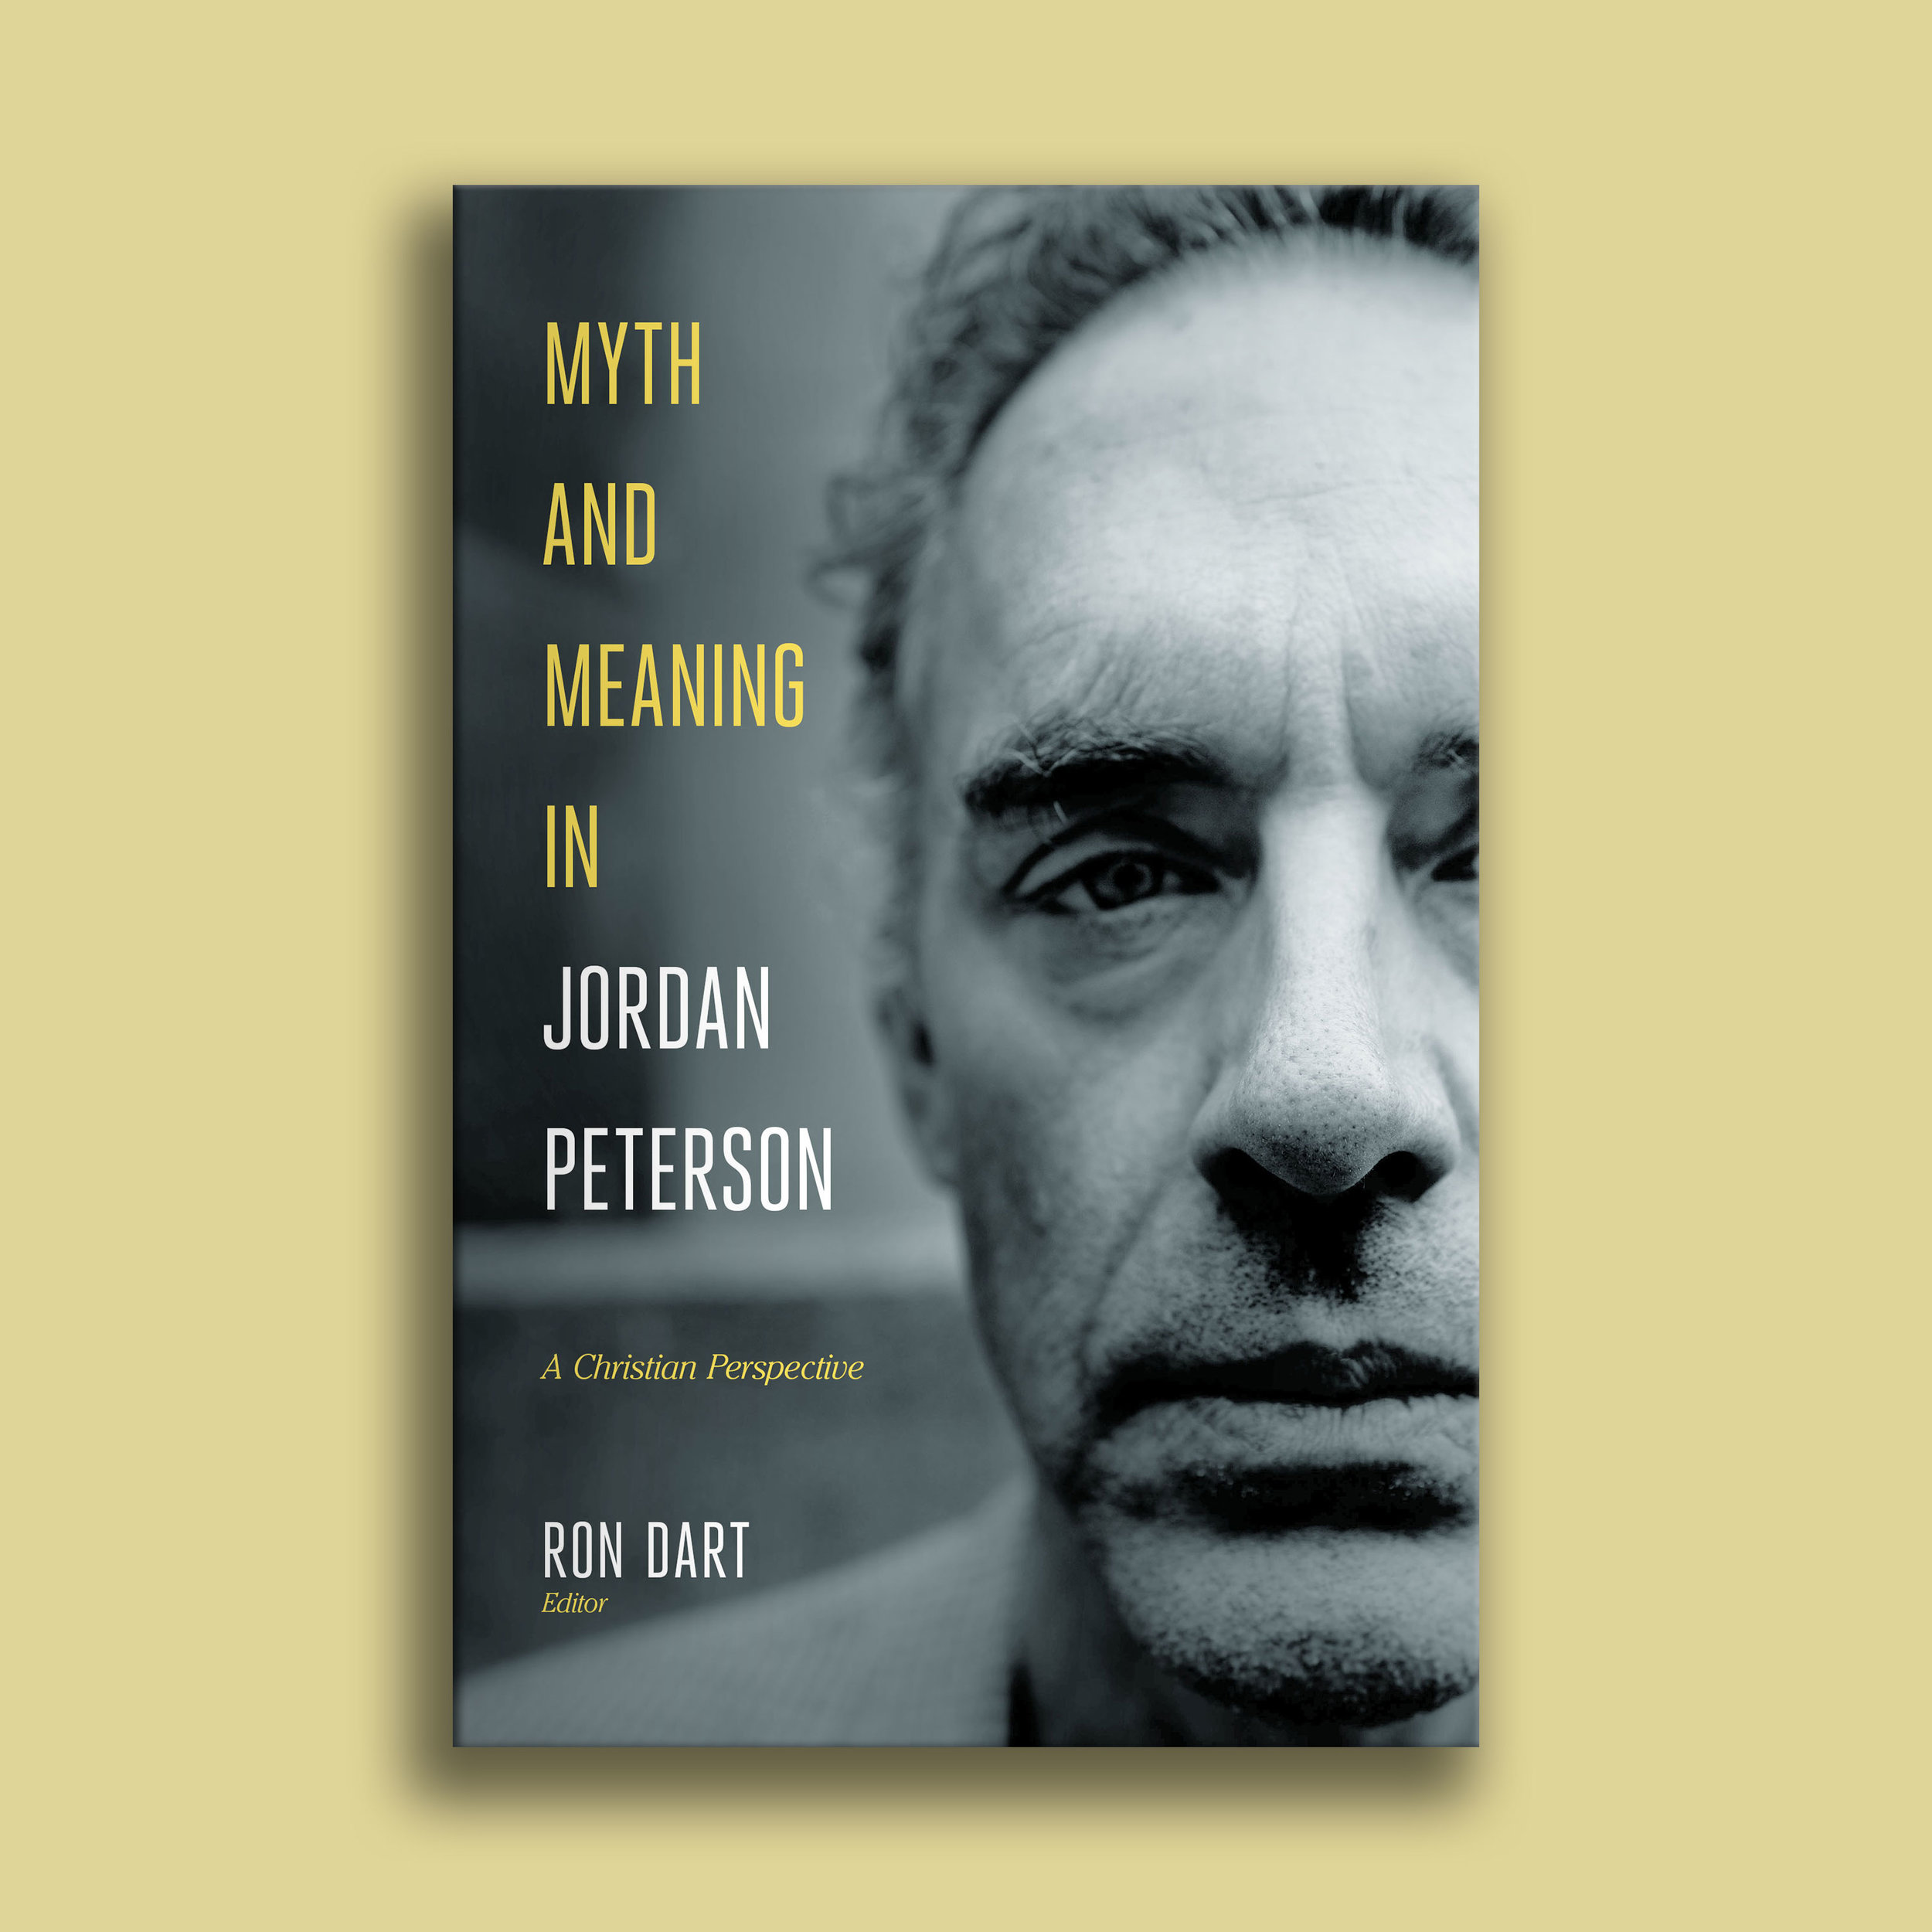 Myth-and-Meaning-in-Jordan-Peterson_Jim_LePage.jpg